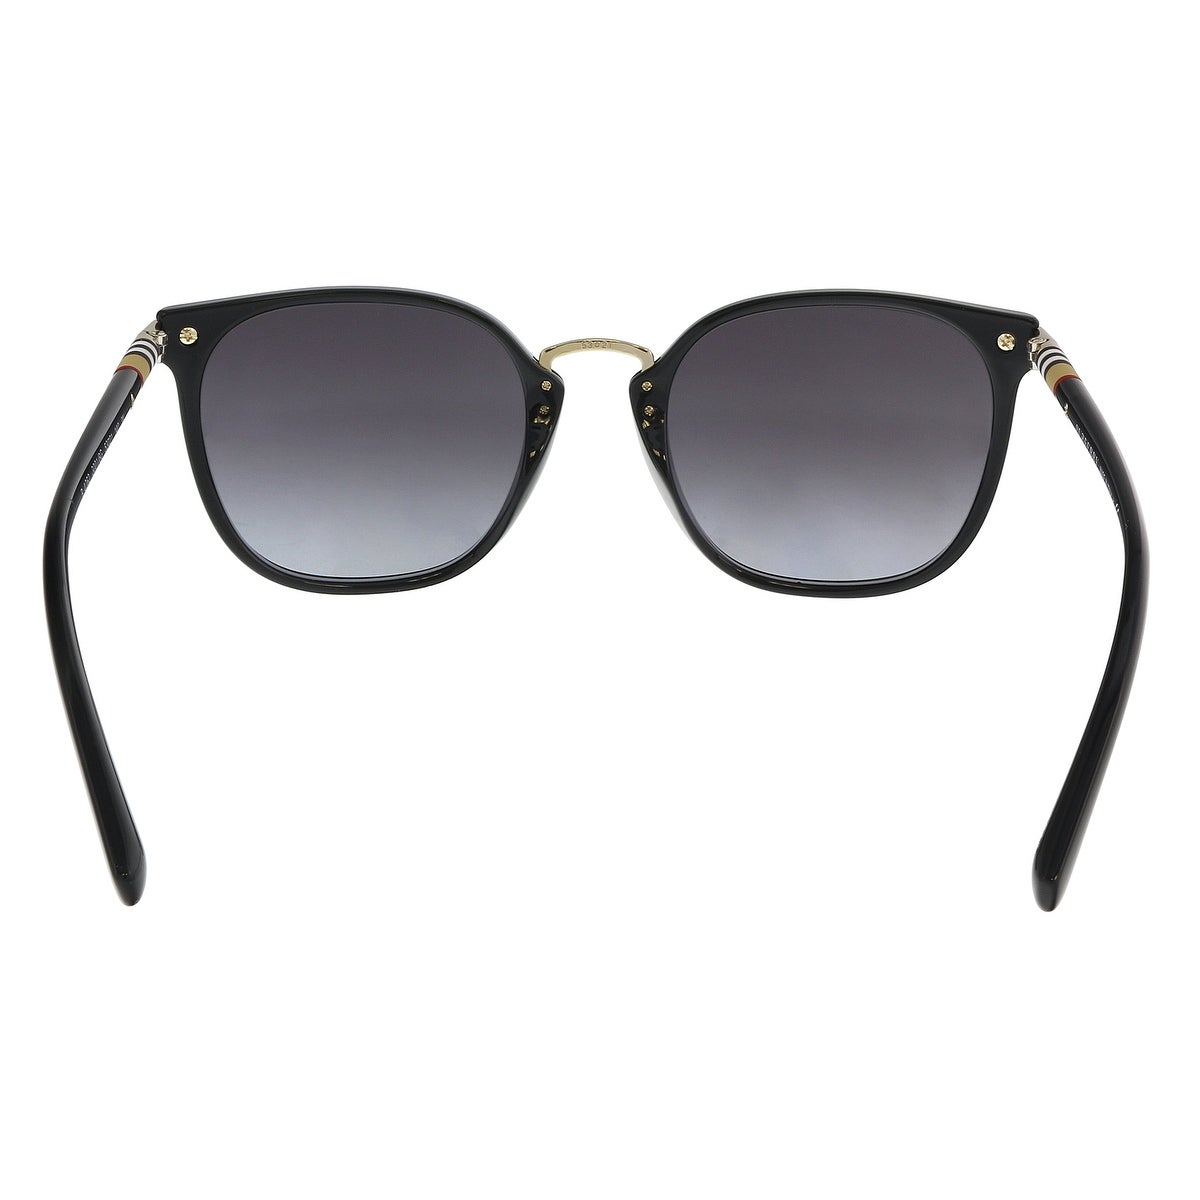 e234a0087b4 Shop Burberry BE4262 30018G Black Square Sunglasses - 53-21-140 - Free  Shipping Today - Overstock - 21158076